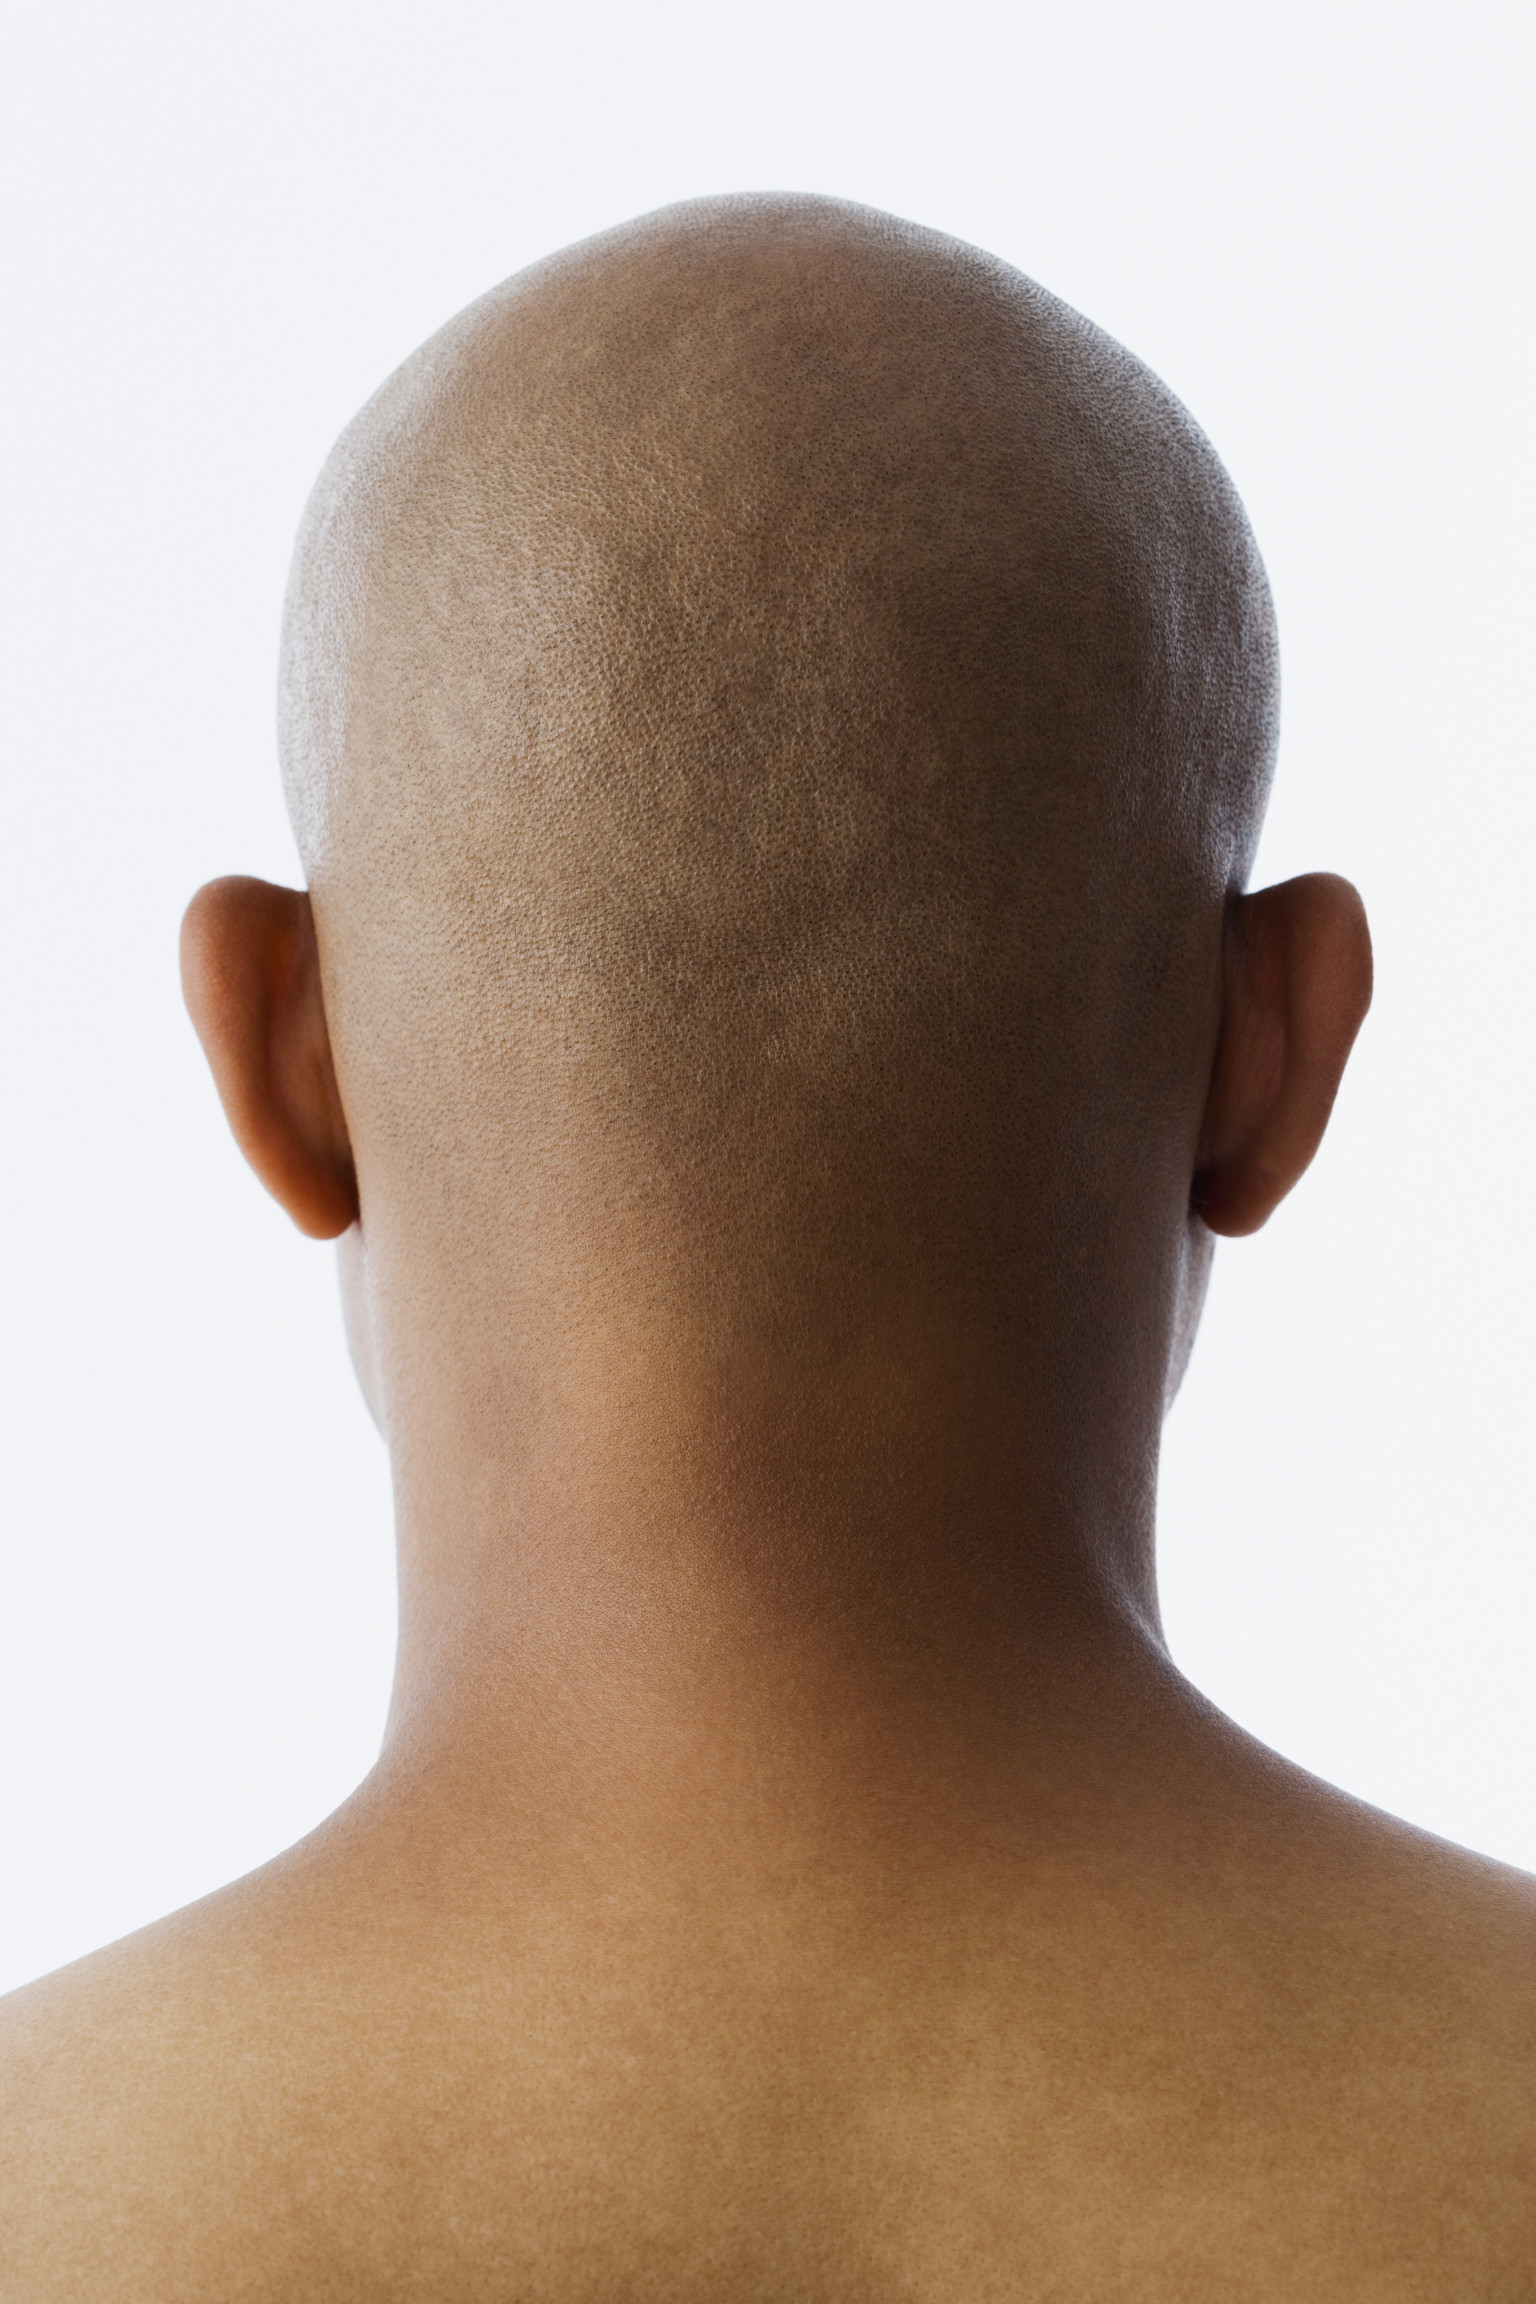 The Godfrey House Plan Back Of Head Black Men Bald Spot Early Balding May Raise